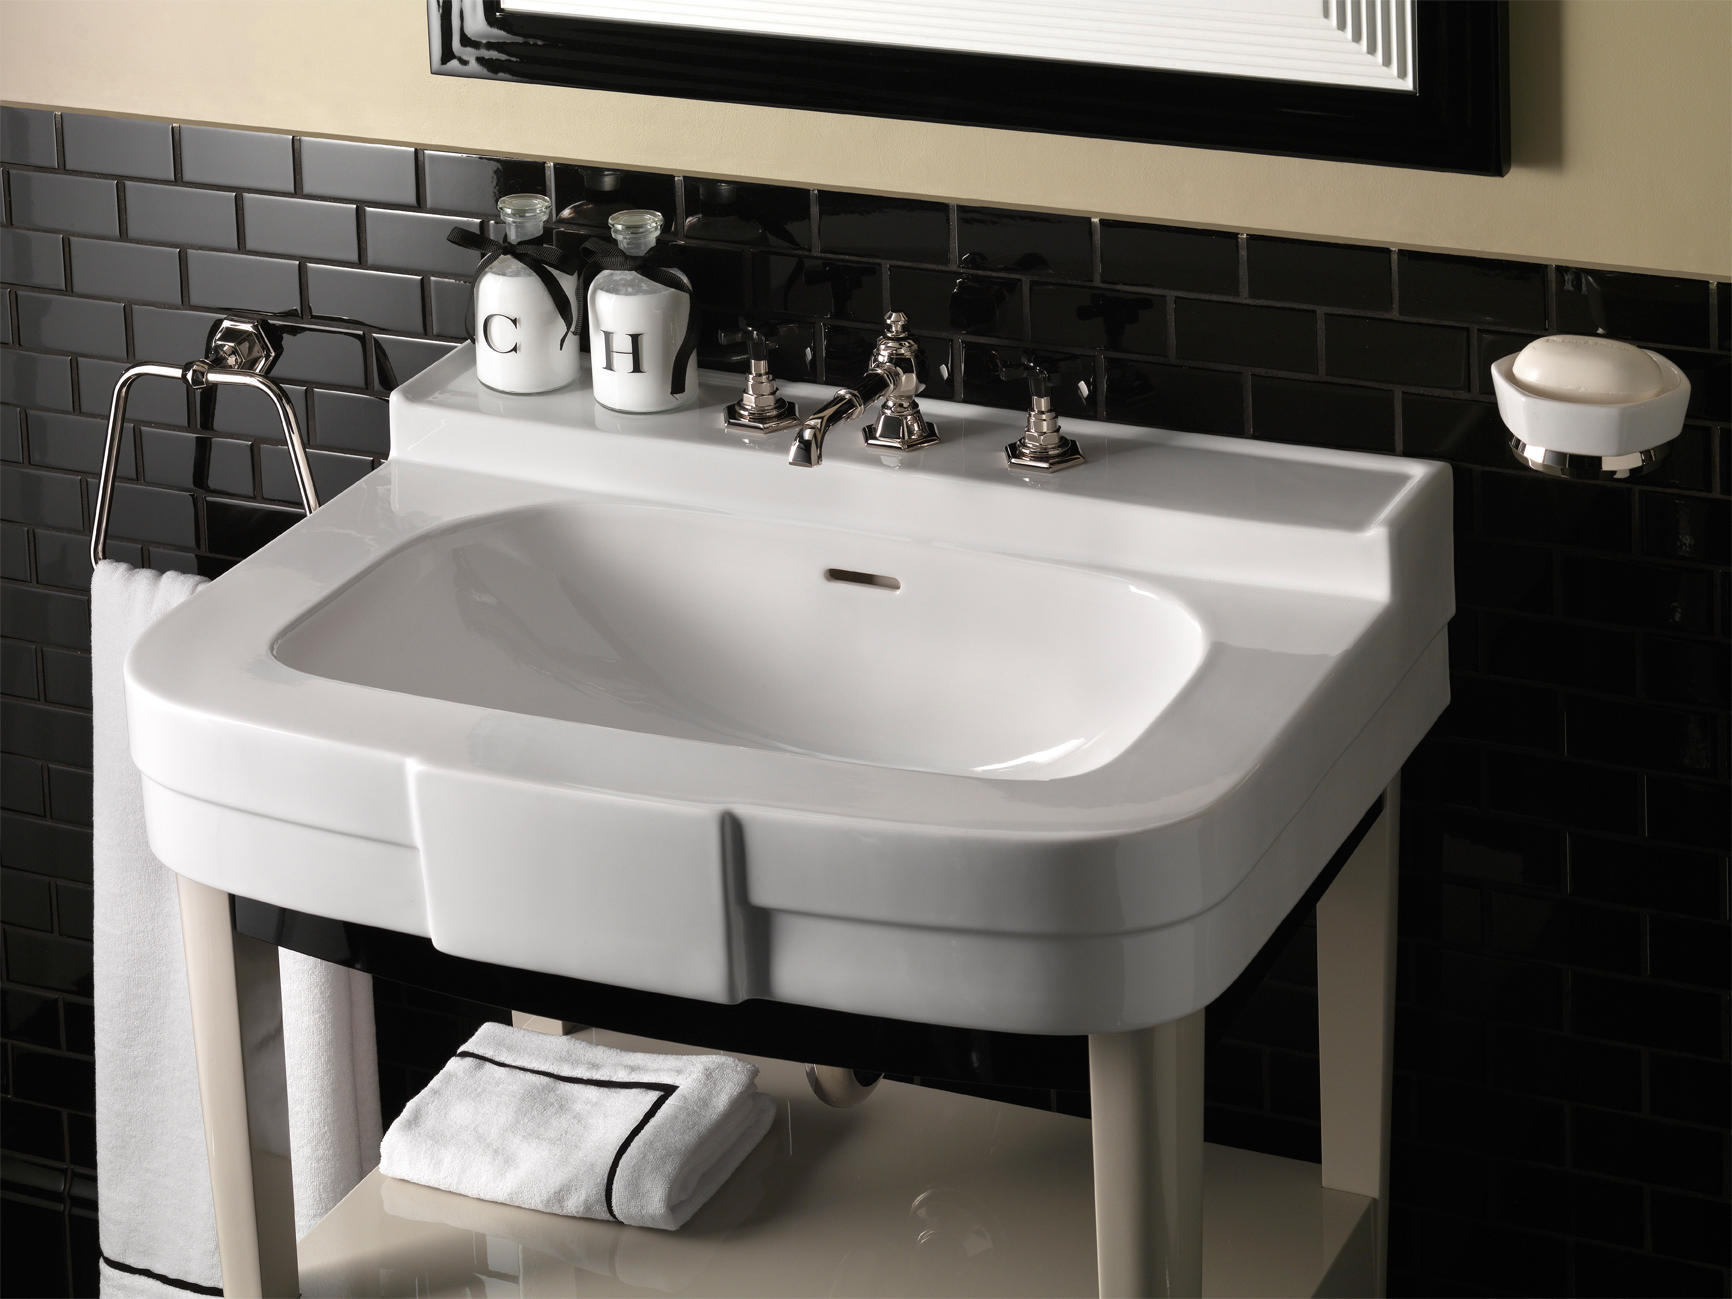 bogart vanity interior wash basins from devon devon. Black Bedroom Furniture Sets. Home Design Ideas